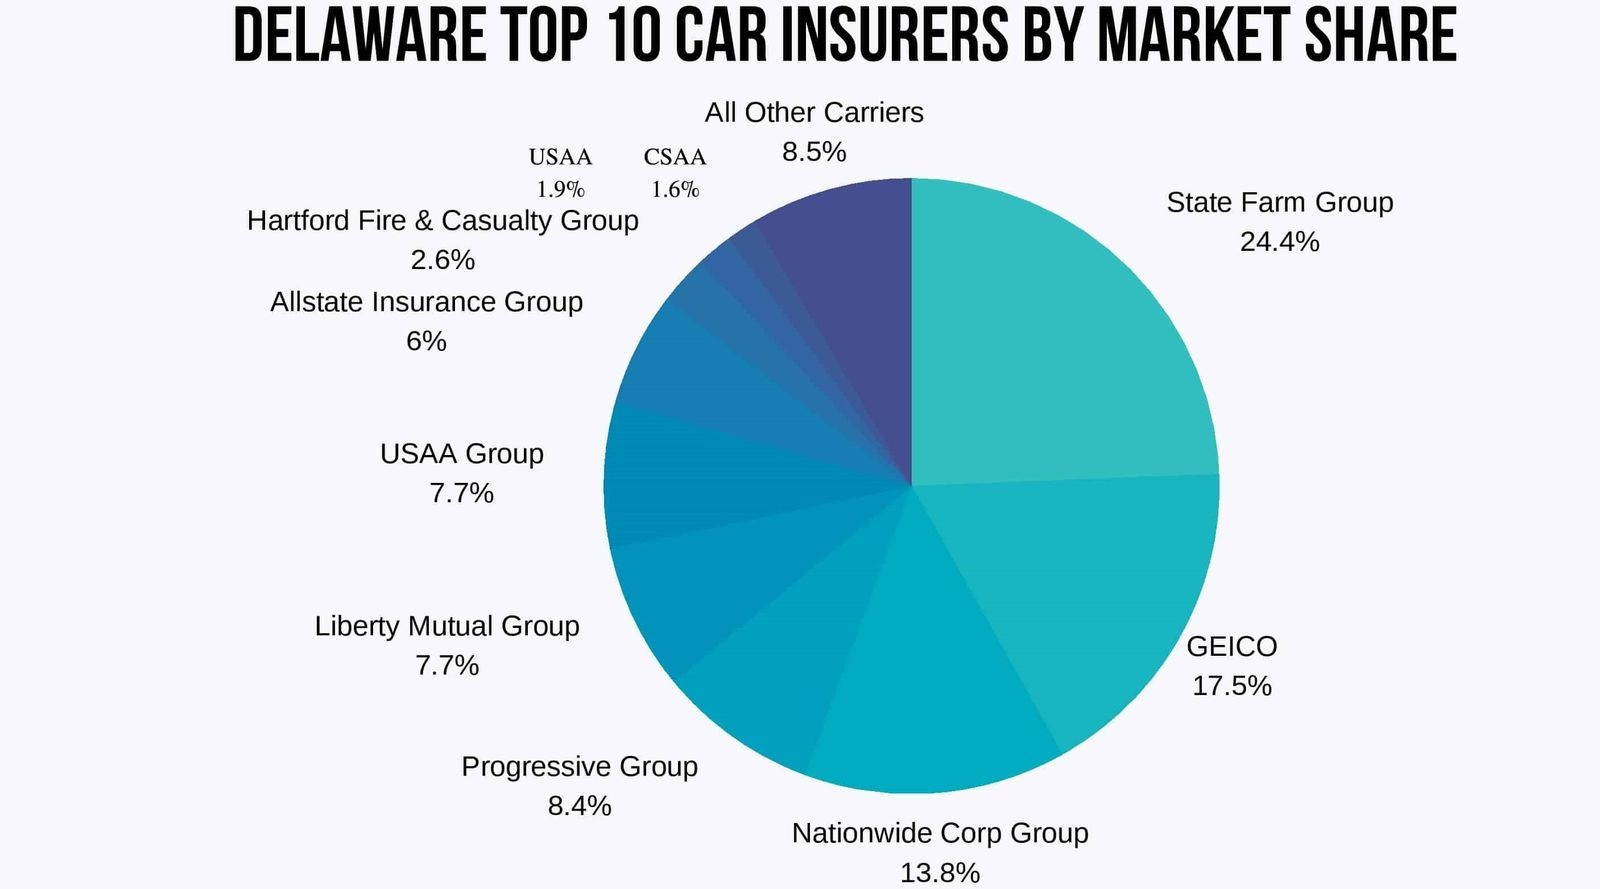 Delaware Top 10 Car Insurance Companies by Market Share